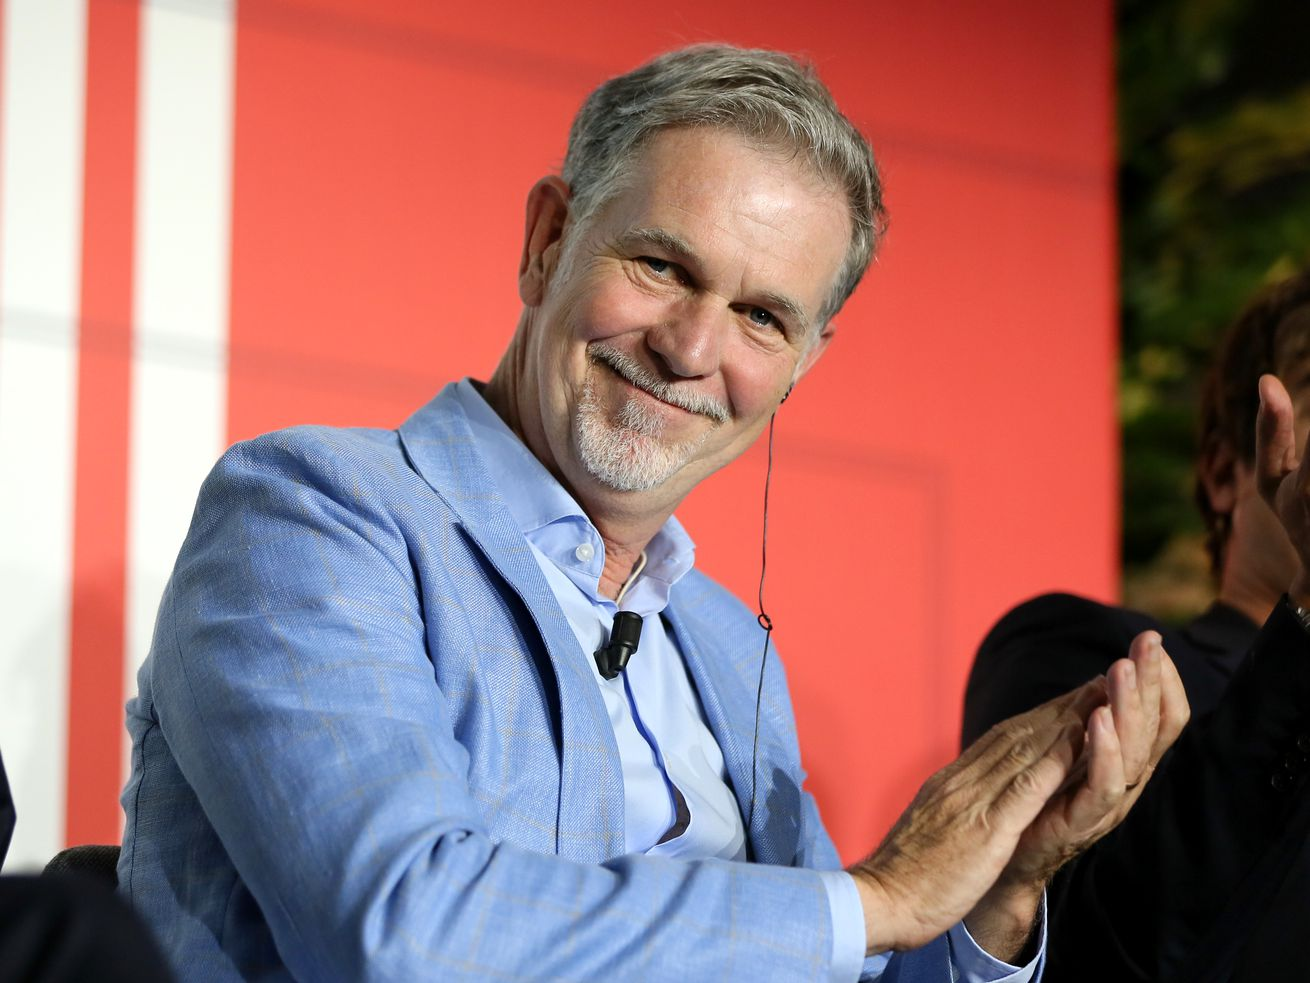 Netflix CEO Reed Hastings smiling and applauding from his seat onstage